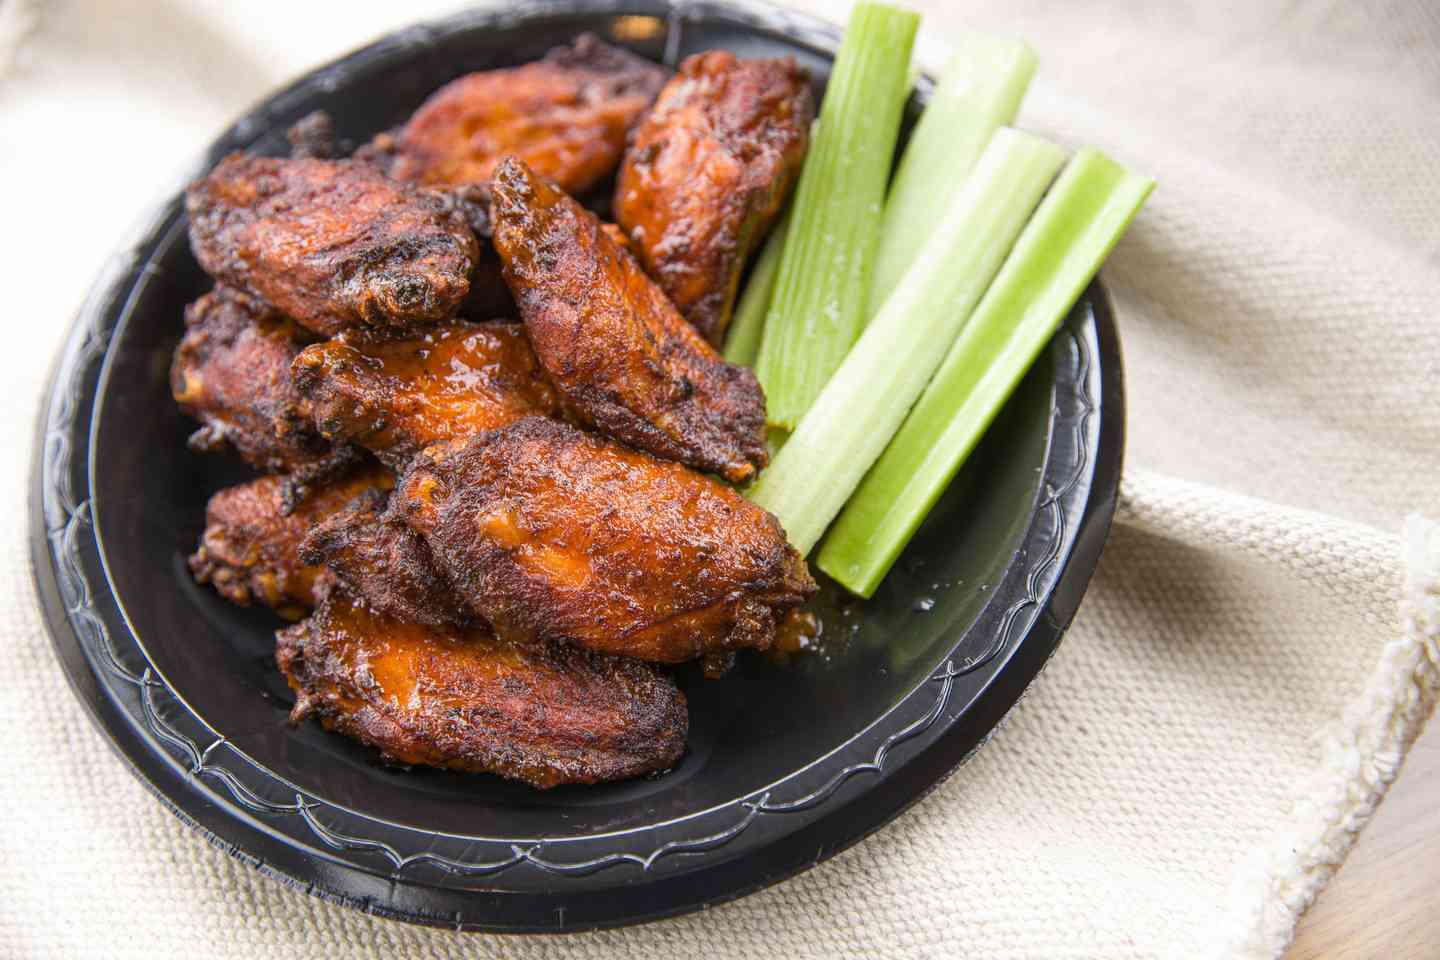 Blake's Smoked Wings